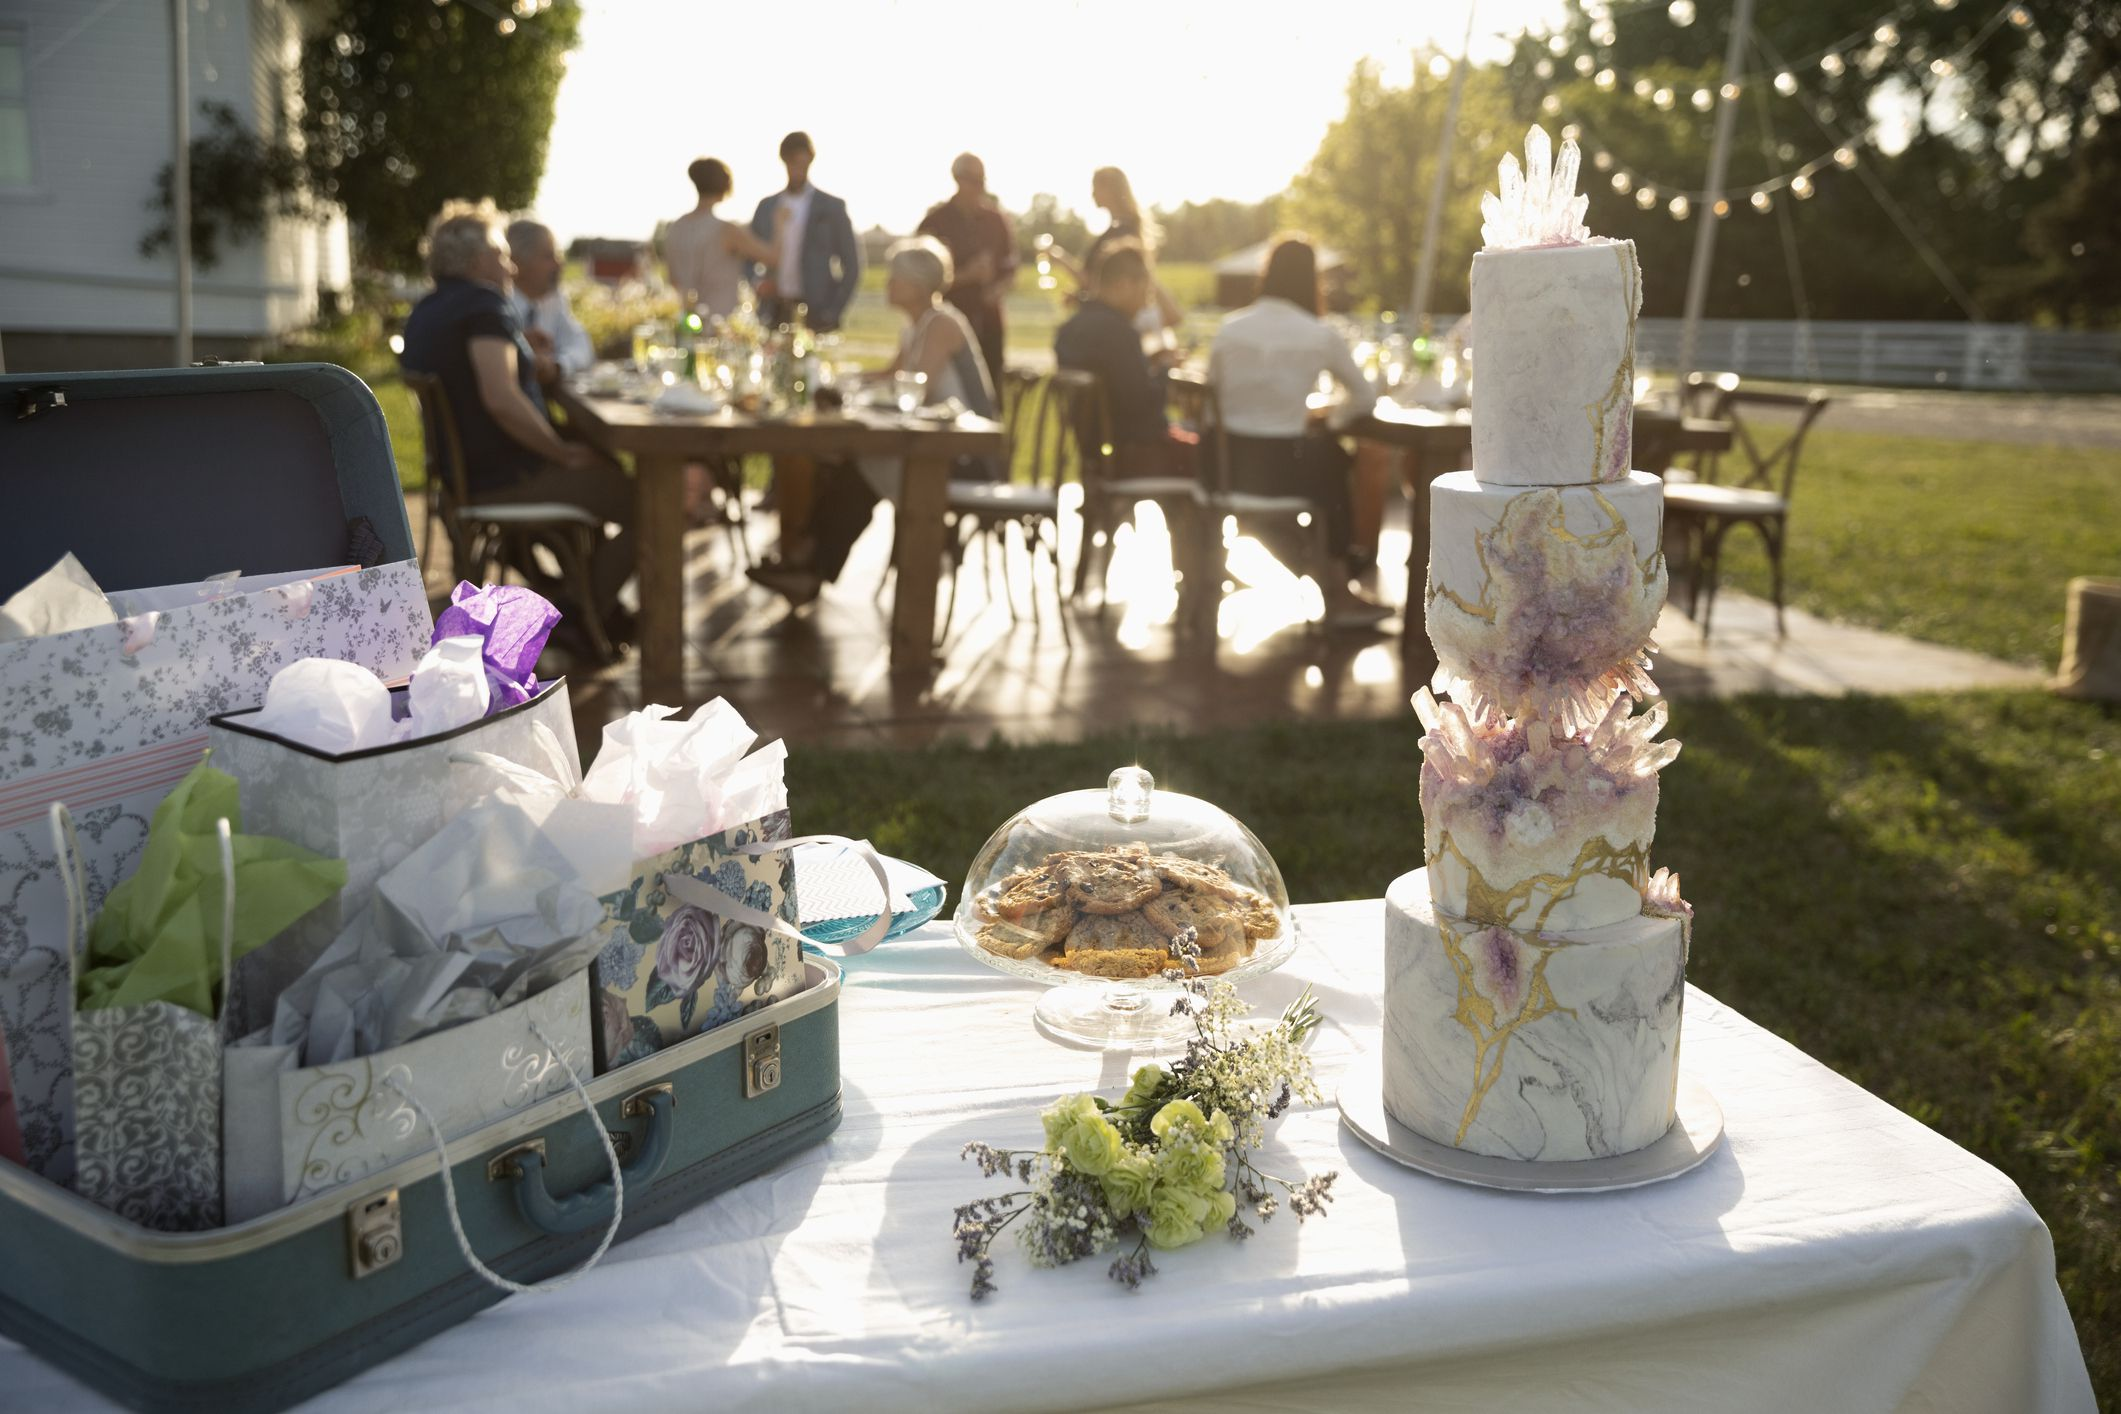 How Much For Wedding Gift Money: How Much Time You Can Take To Deliver A Wedding Gift